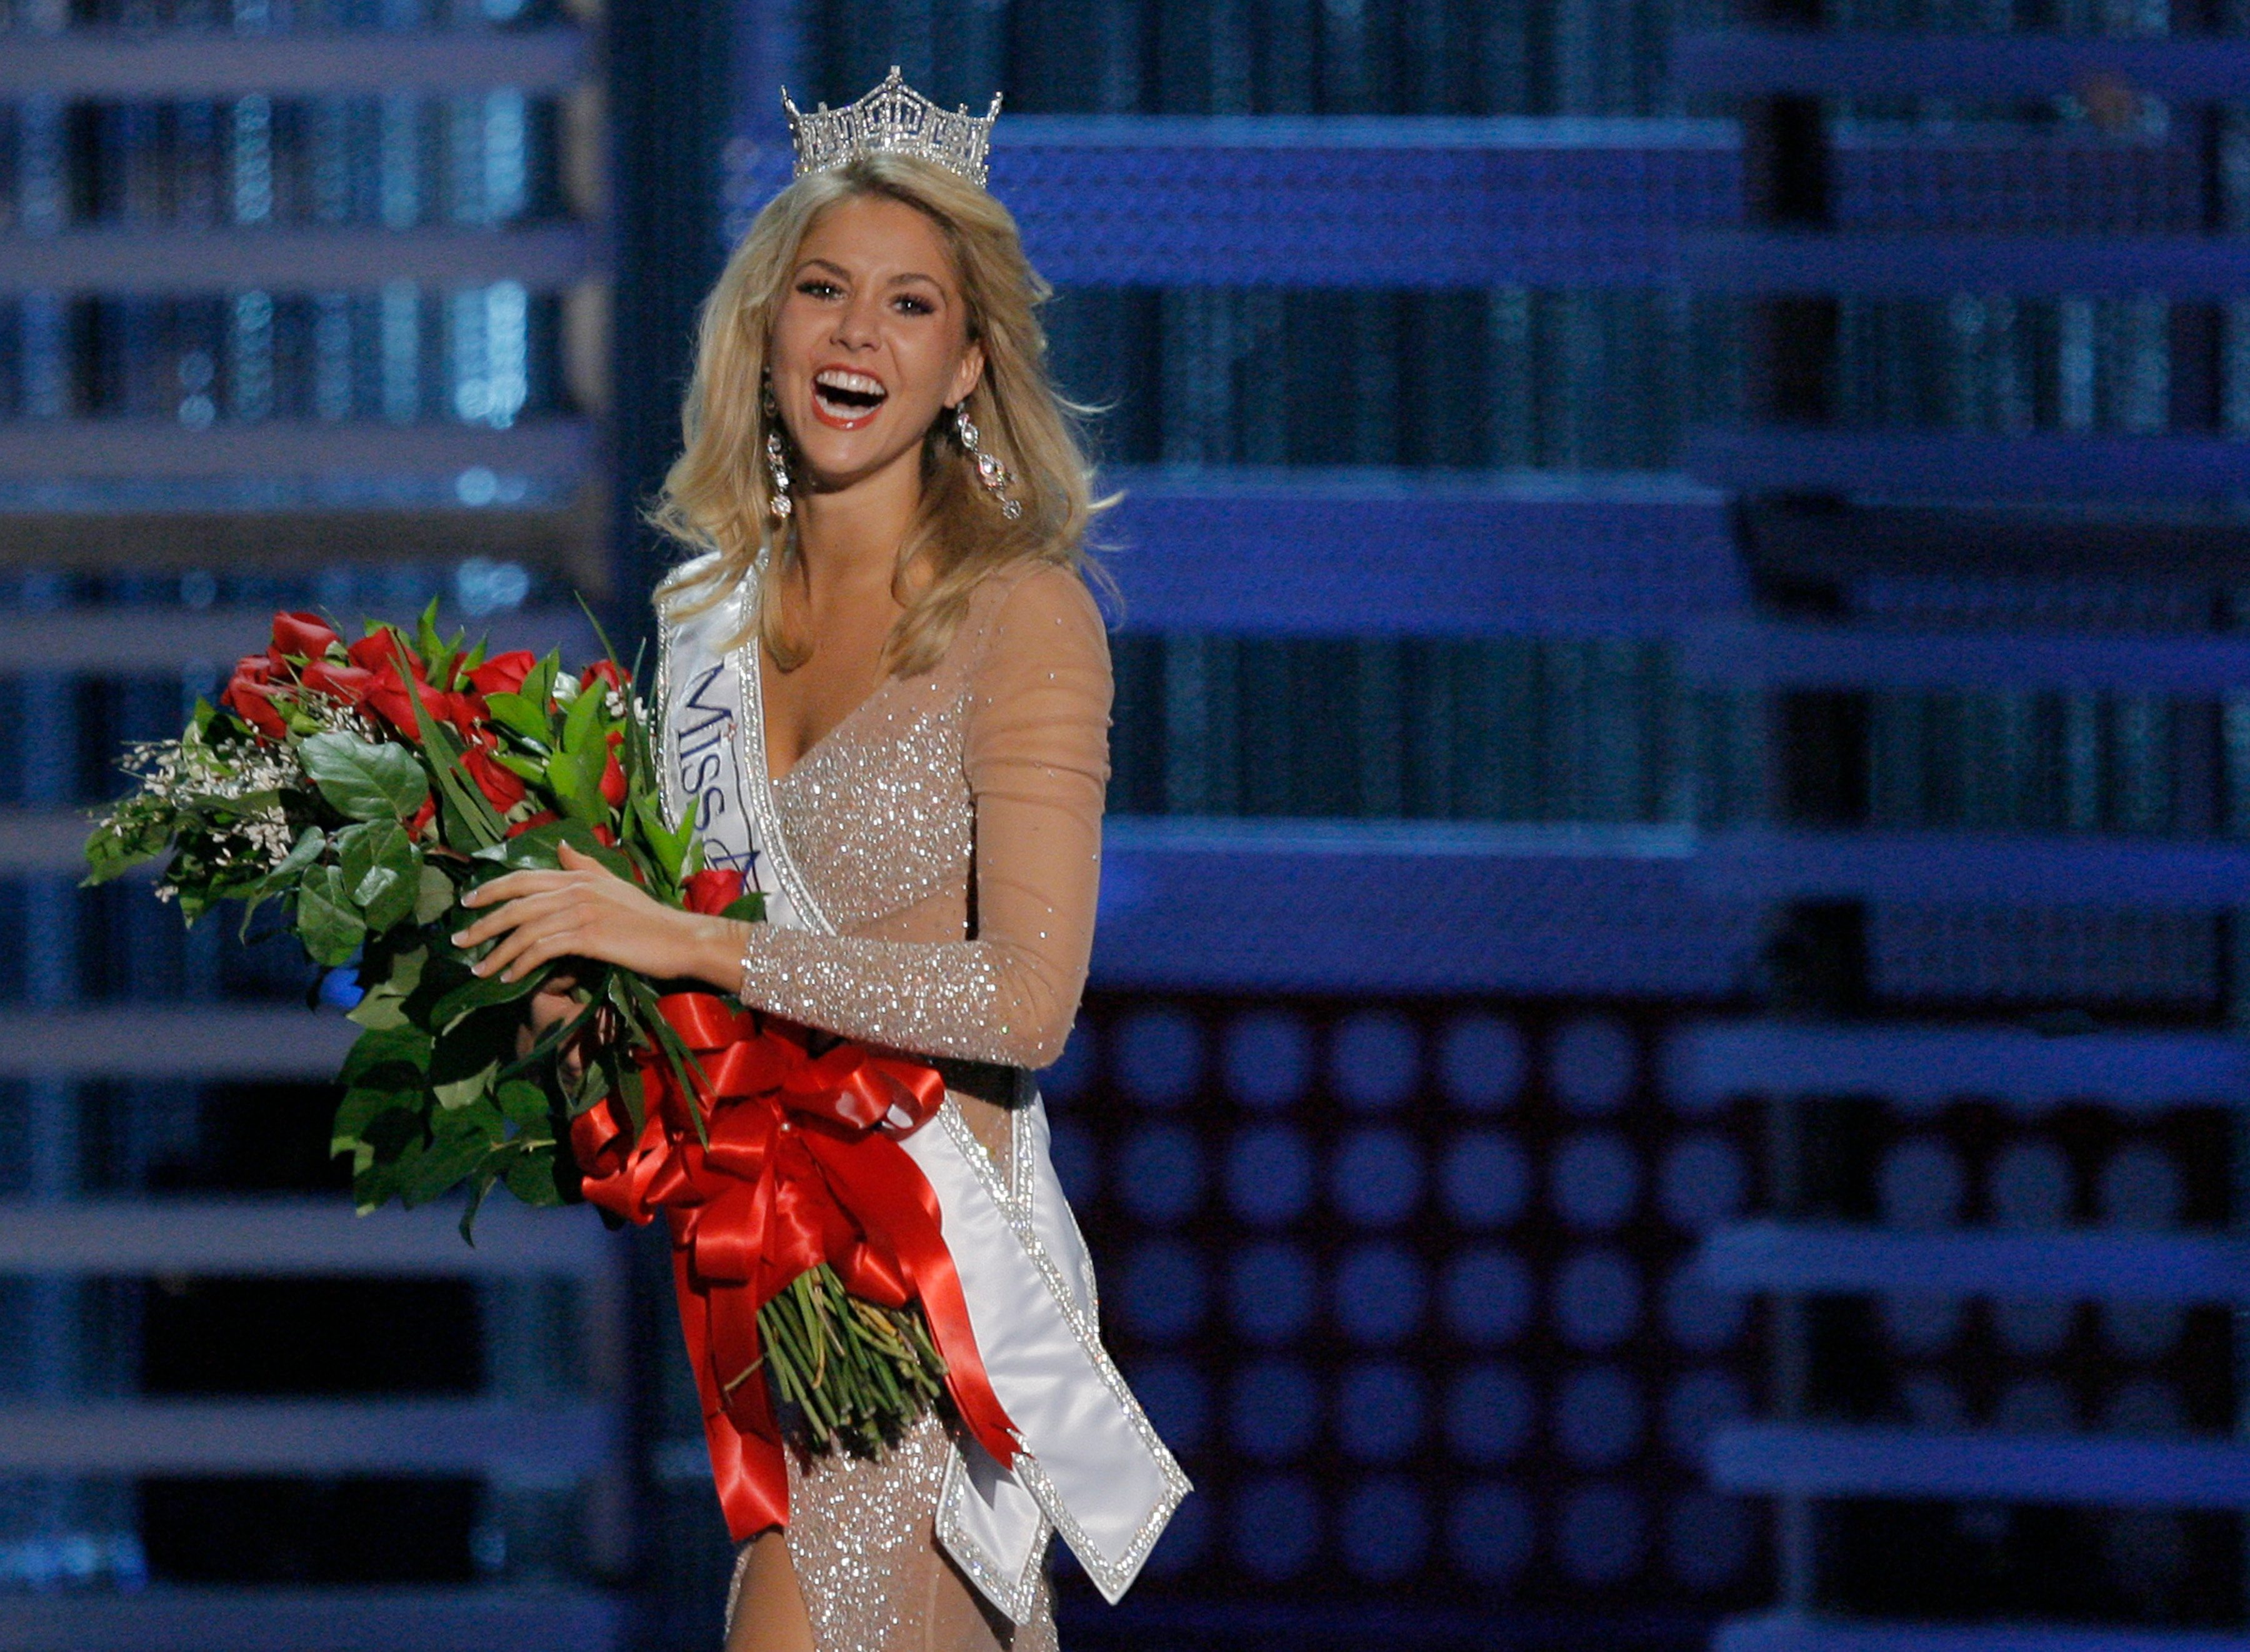 Mandatory Credit: Photo by Jae C Hong/AP/Shutterstock (6370308a) Kirsten Haglund Kirsten Haglund celebrates after being crowned Miss America 2008 during the Miss America Pageant at the Planet Hollywood hotel and casino in Las Vegas Miss America, Las Vegas, USA